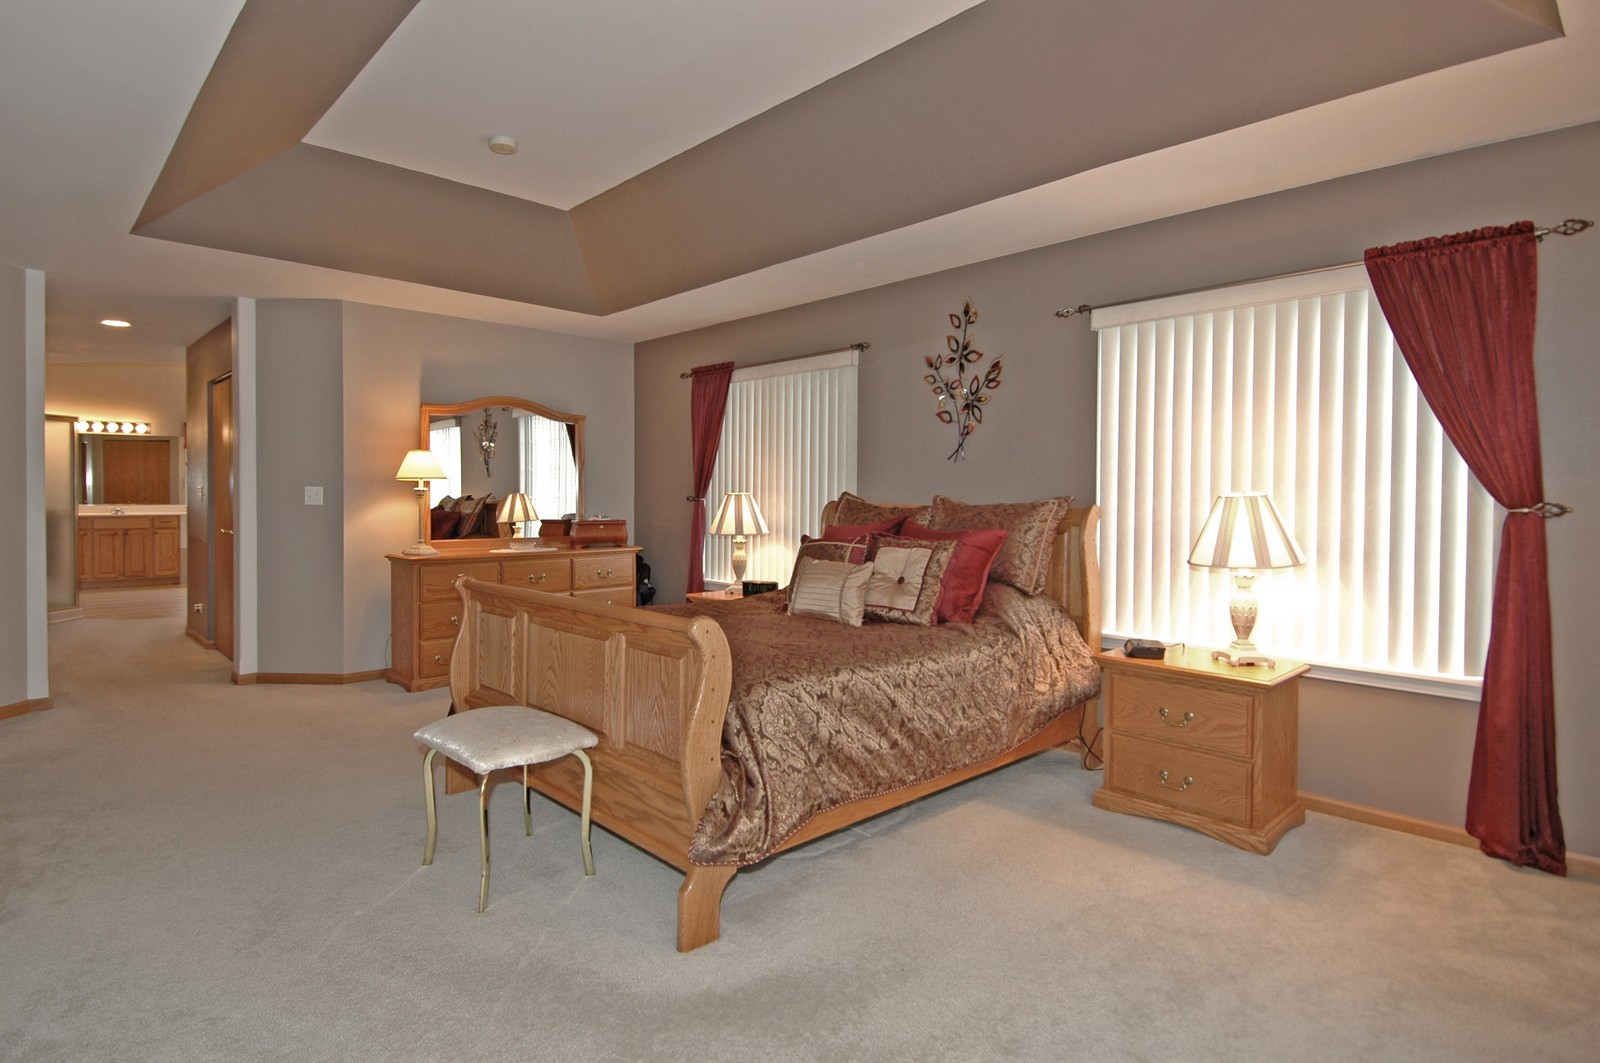 Real Estate Photography - 10943 Concord, Huntley, IL, 60142 - Master Bedroom